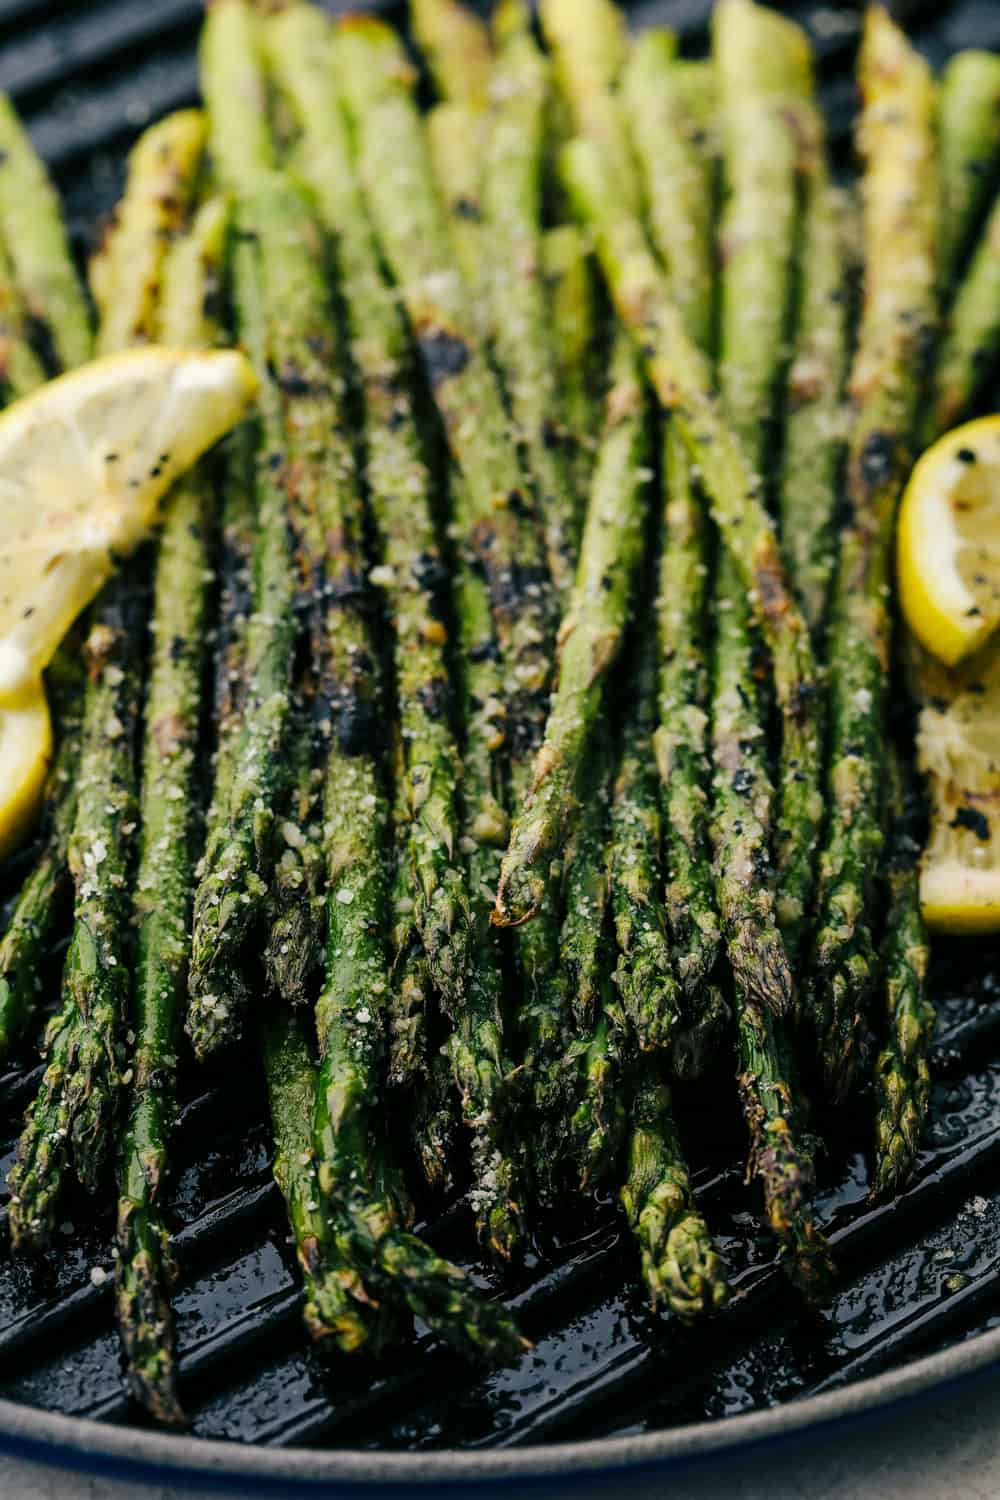 Asparagus on the grill plate with lemon wedges on the side.